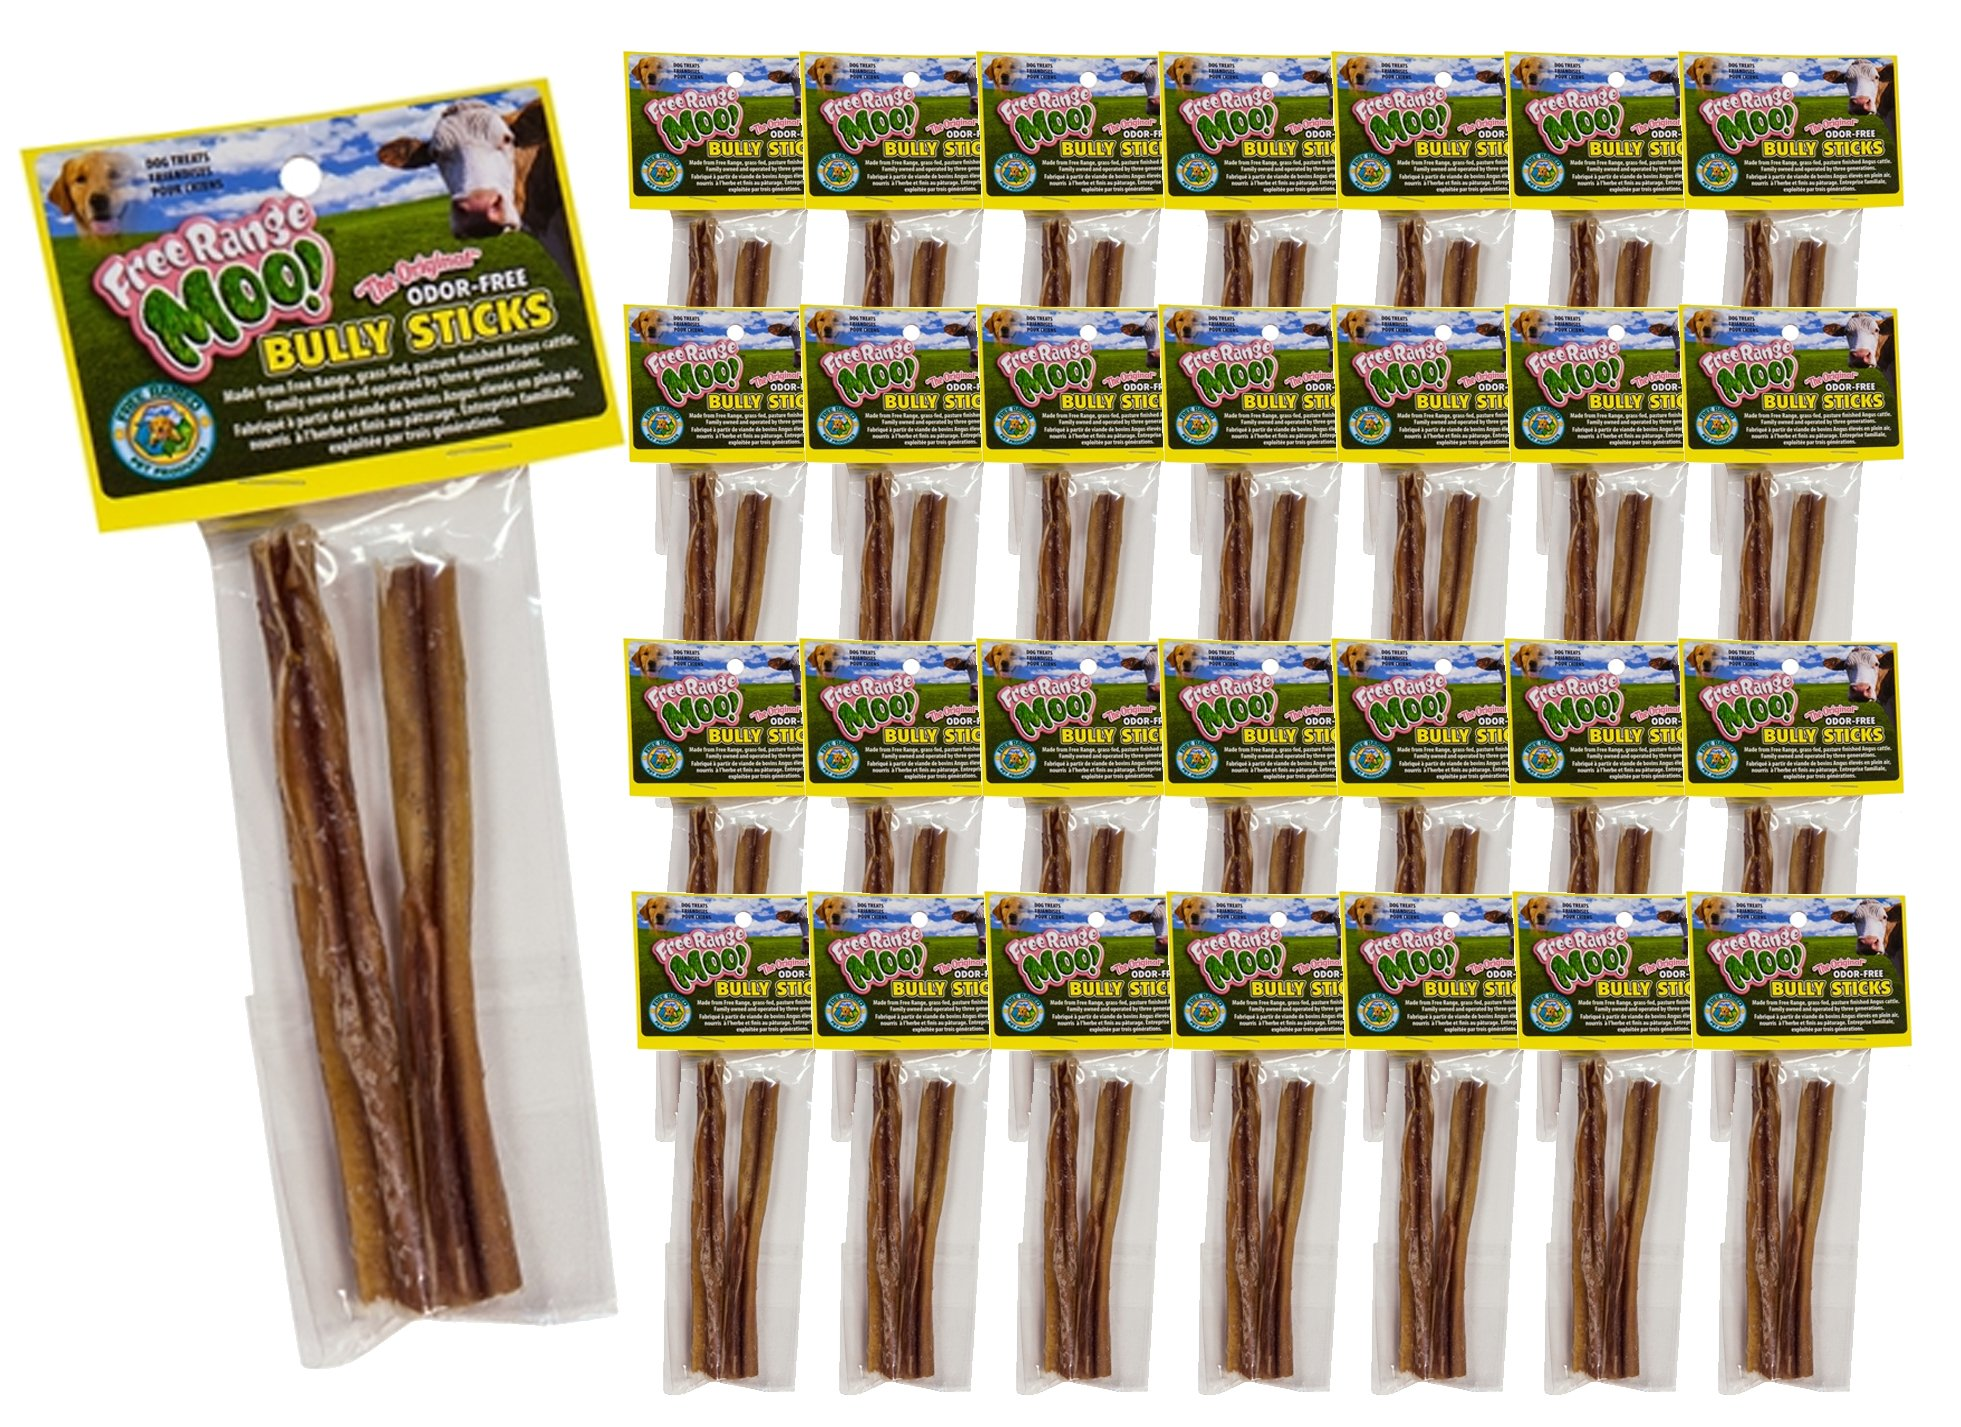 Free Raised Pet Products, 5-6 inch Standard Bully Stick Twin Pack, 60 Bully Sticks